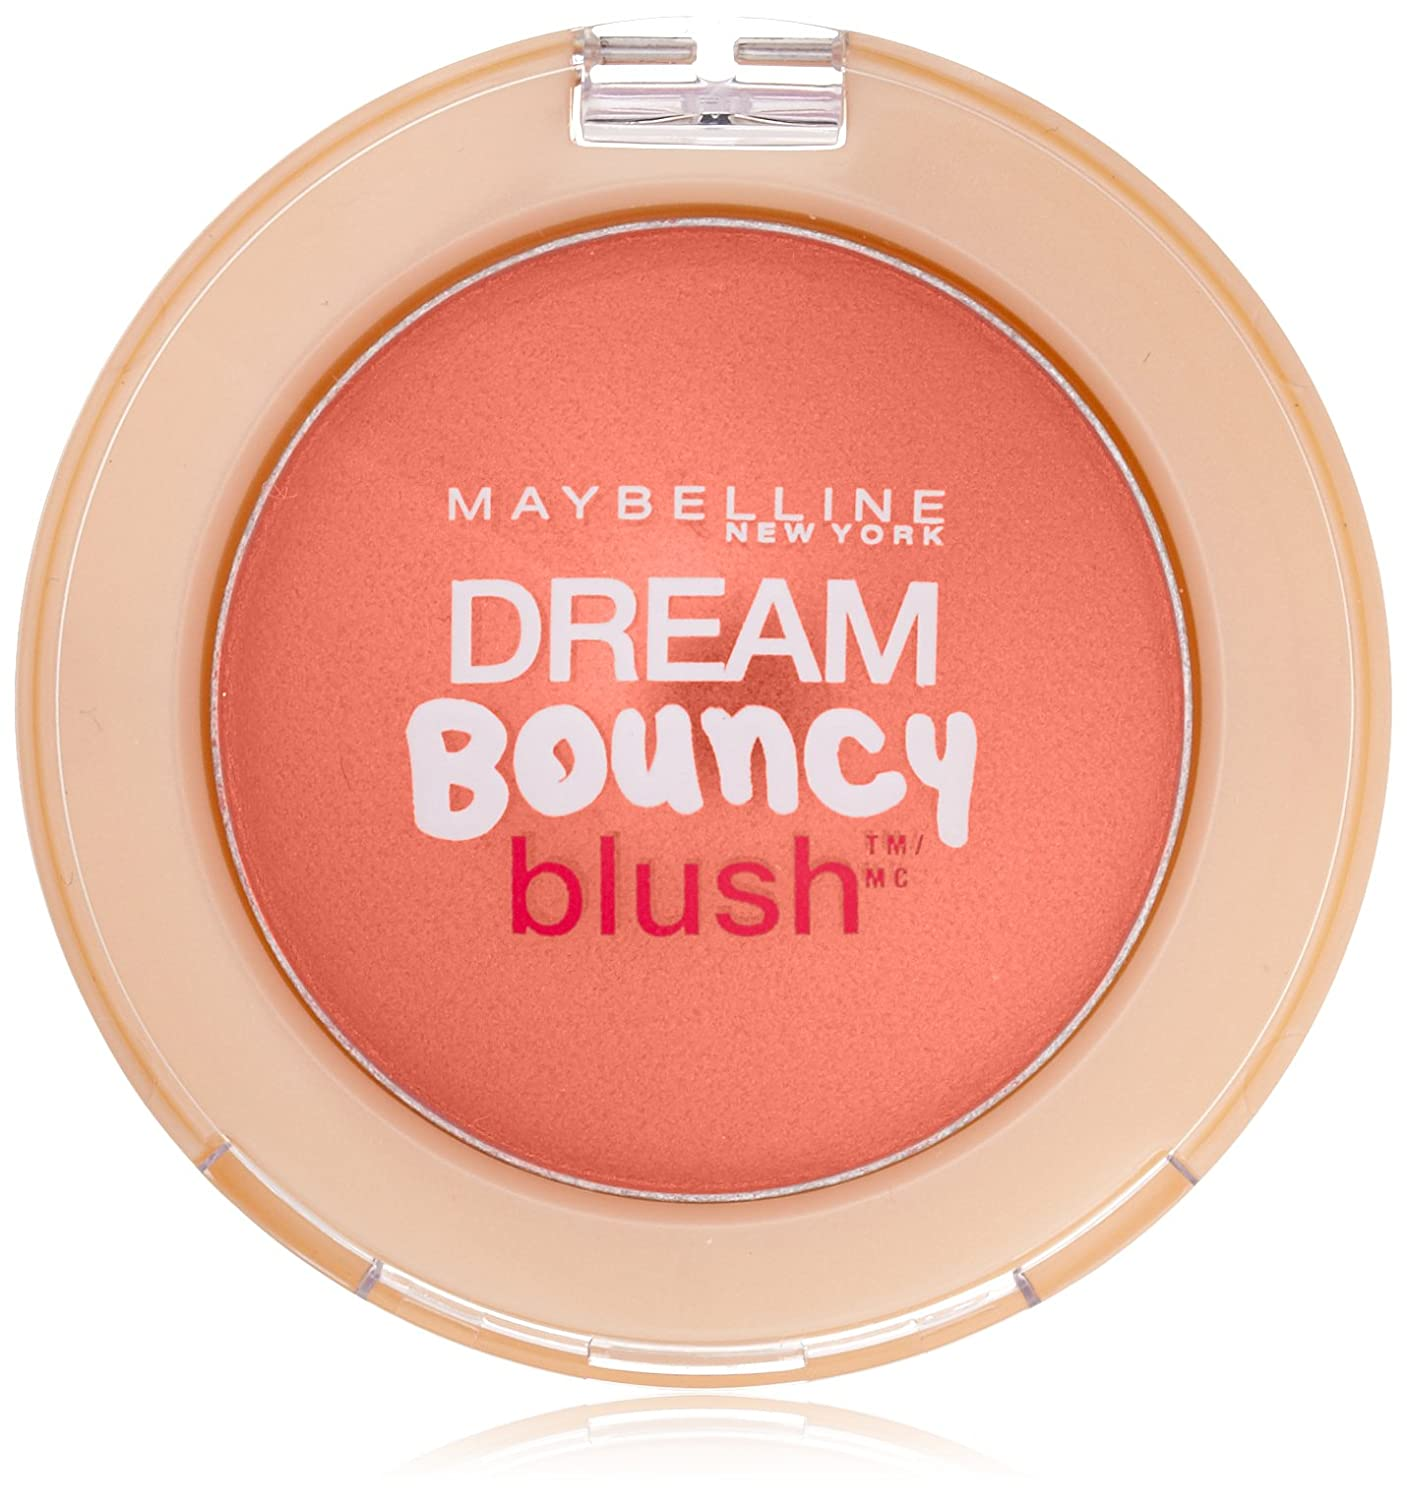 Maybelline New York Dream Bouncy Blush, Candy Coral, 0.19 Oz